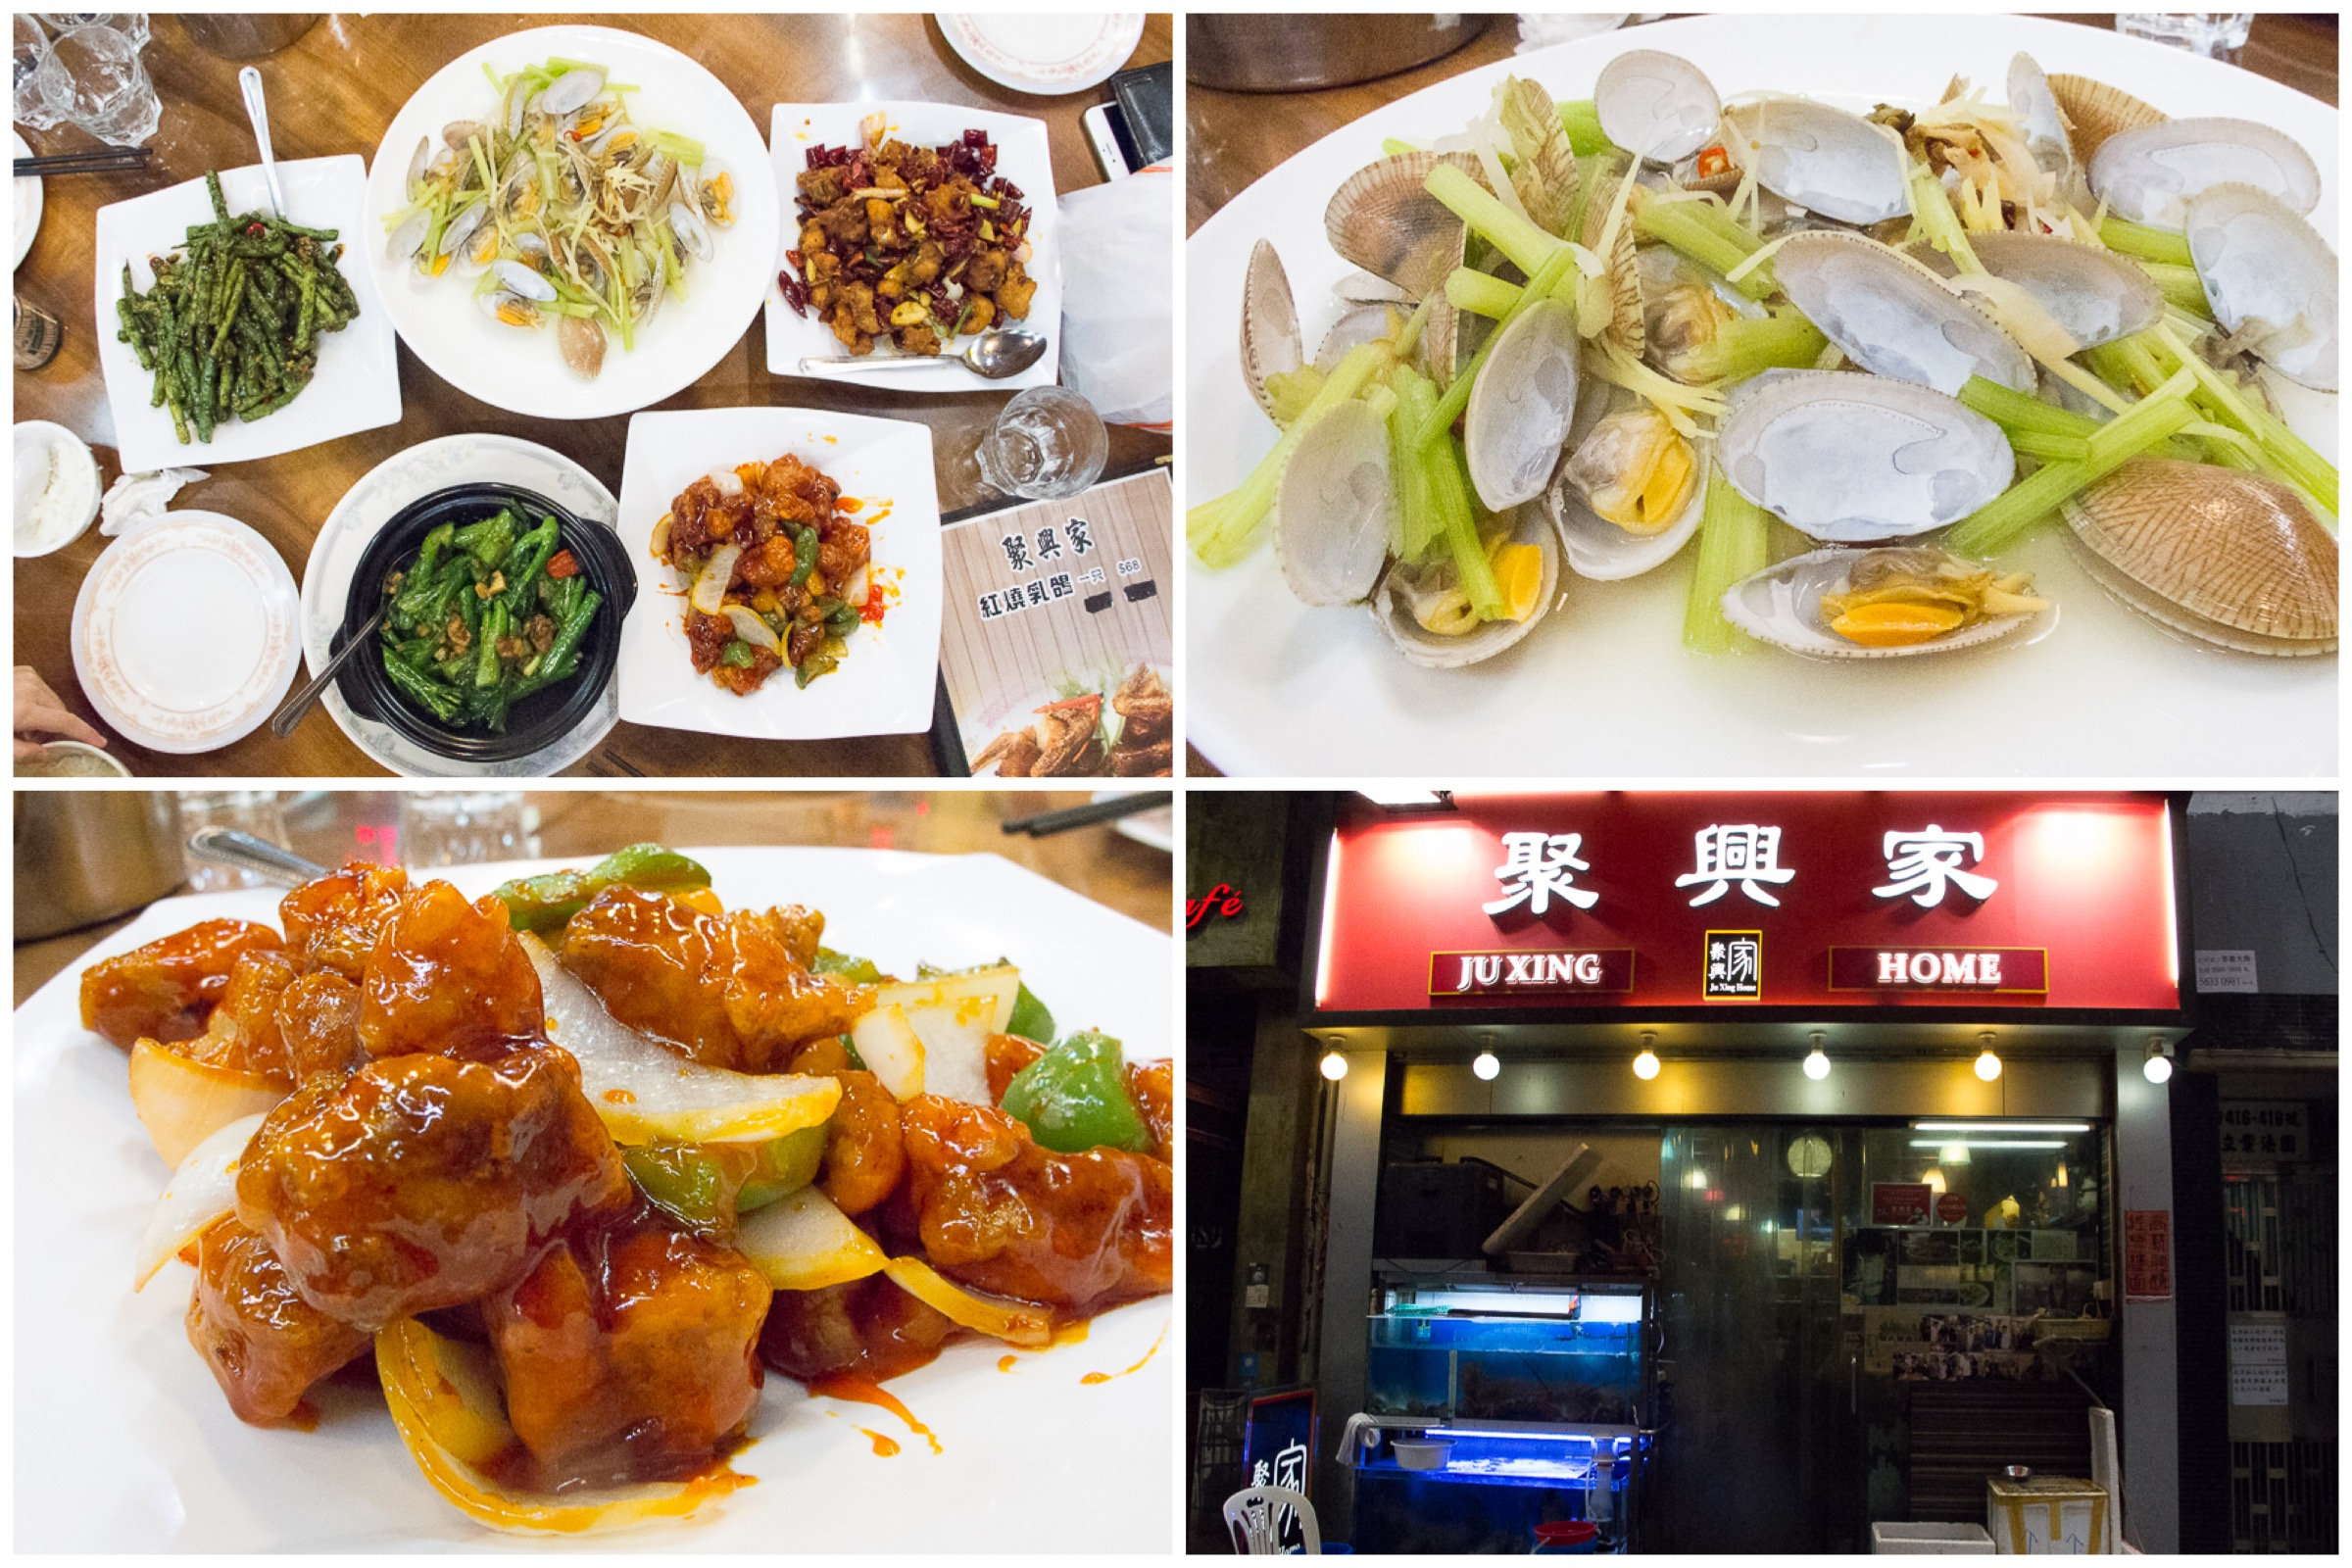 Ju Xing Home 聚興家 - Favourite Supper Spot of Many Hong Kong Chefs, With Michelin Bib Gourmand